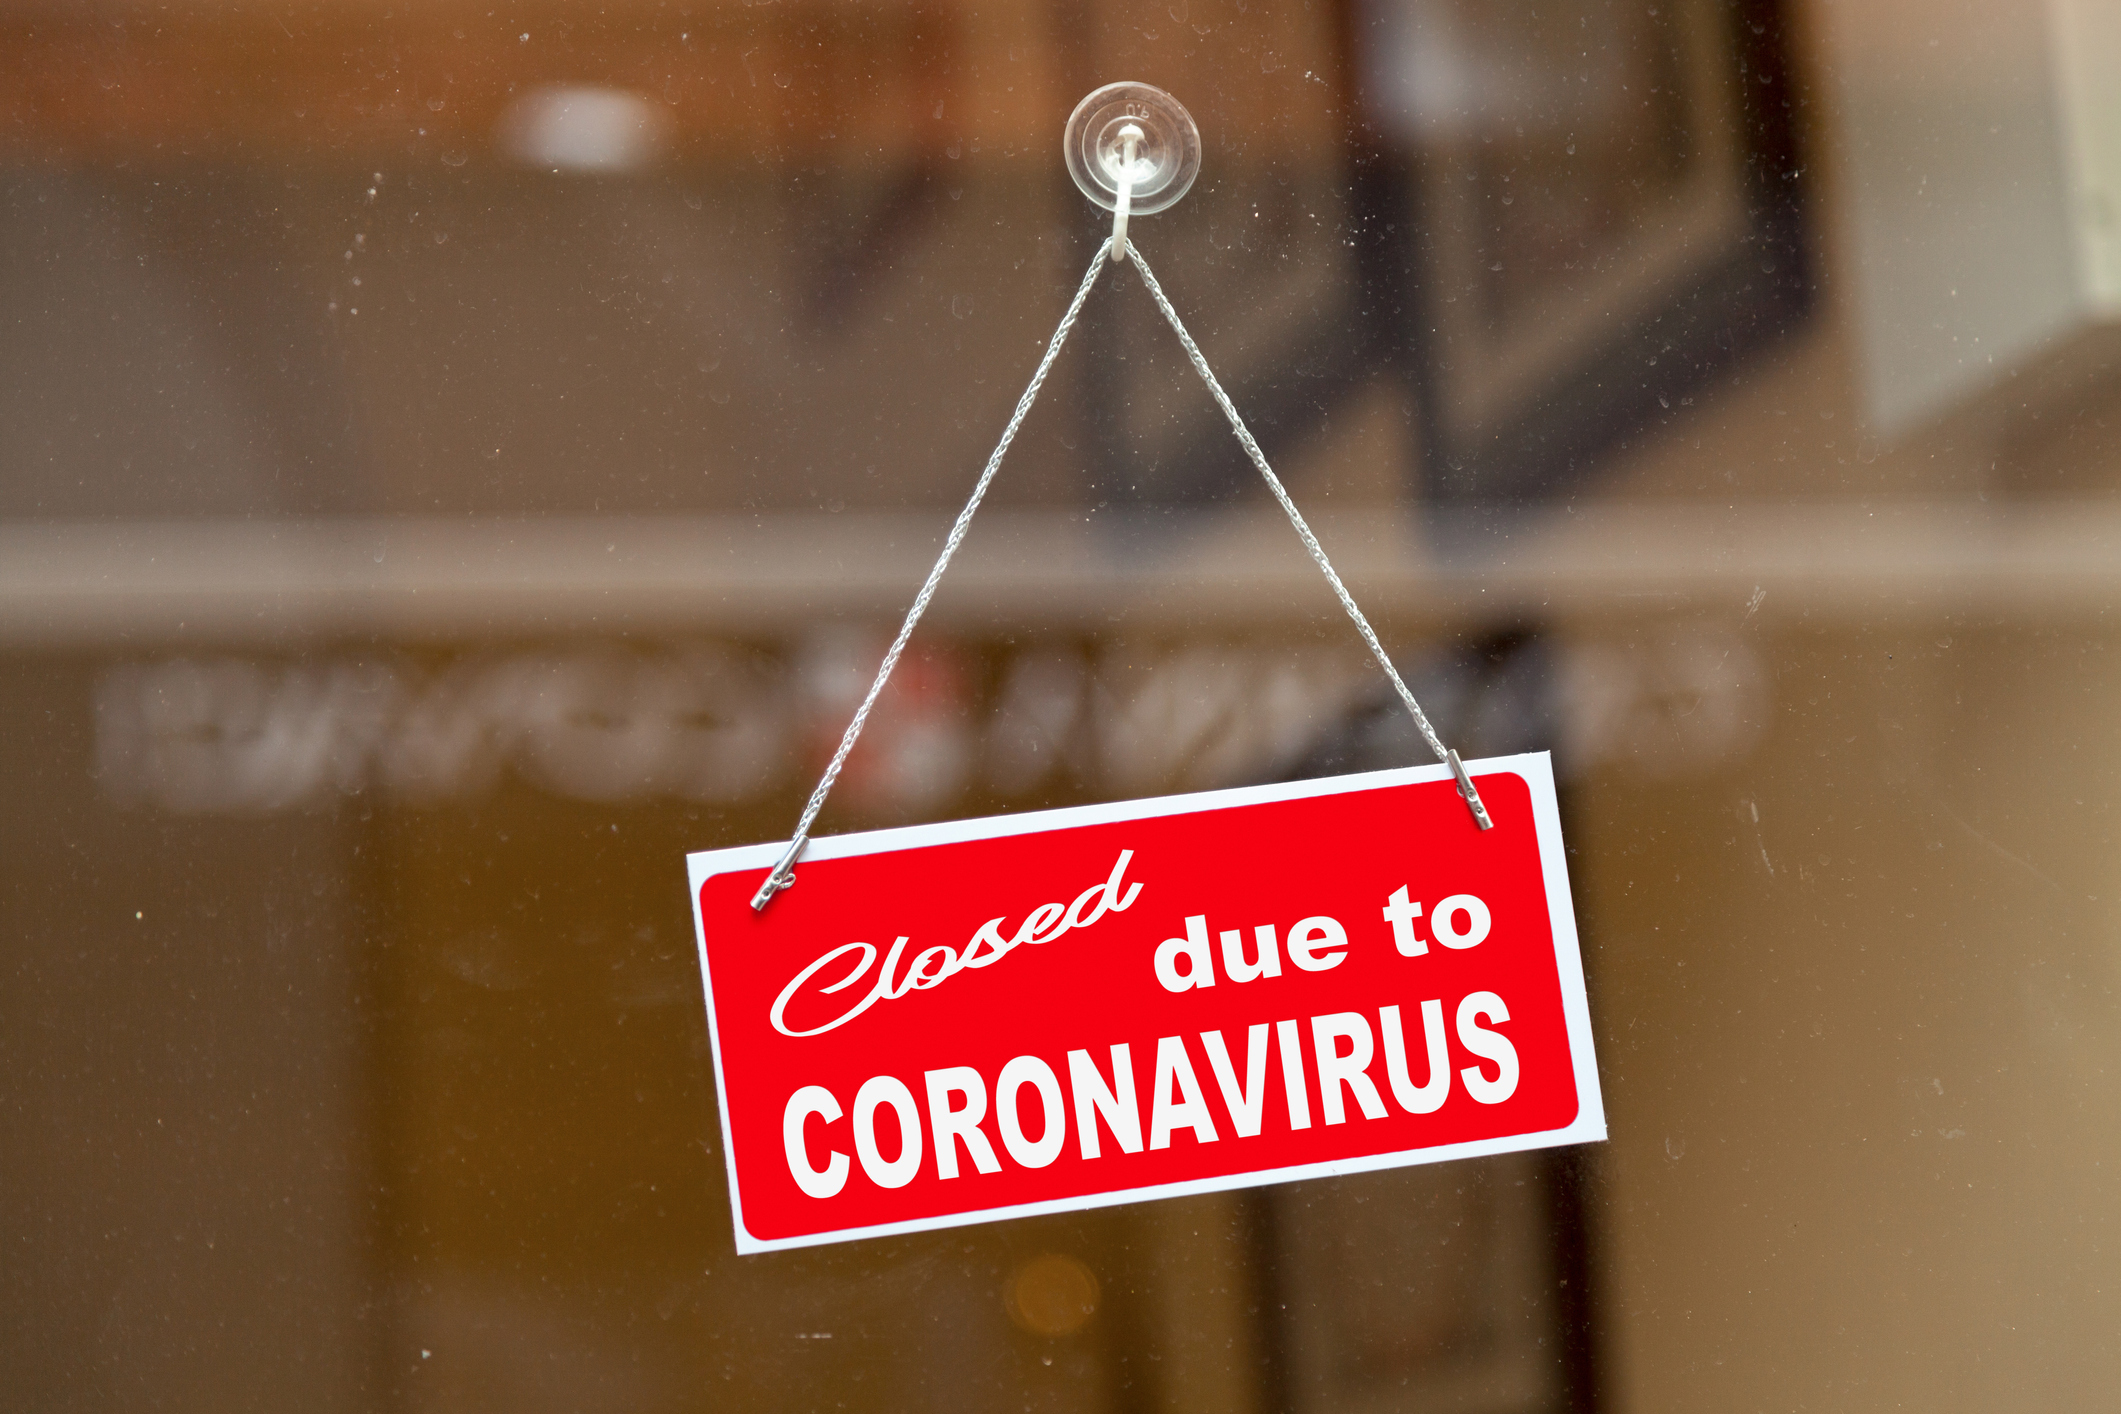 Coronavirus small business perspective